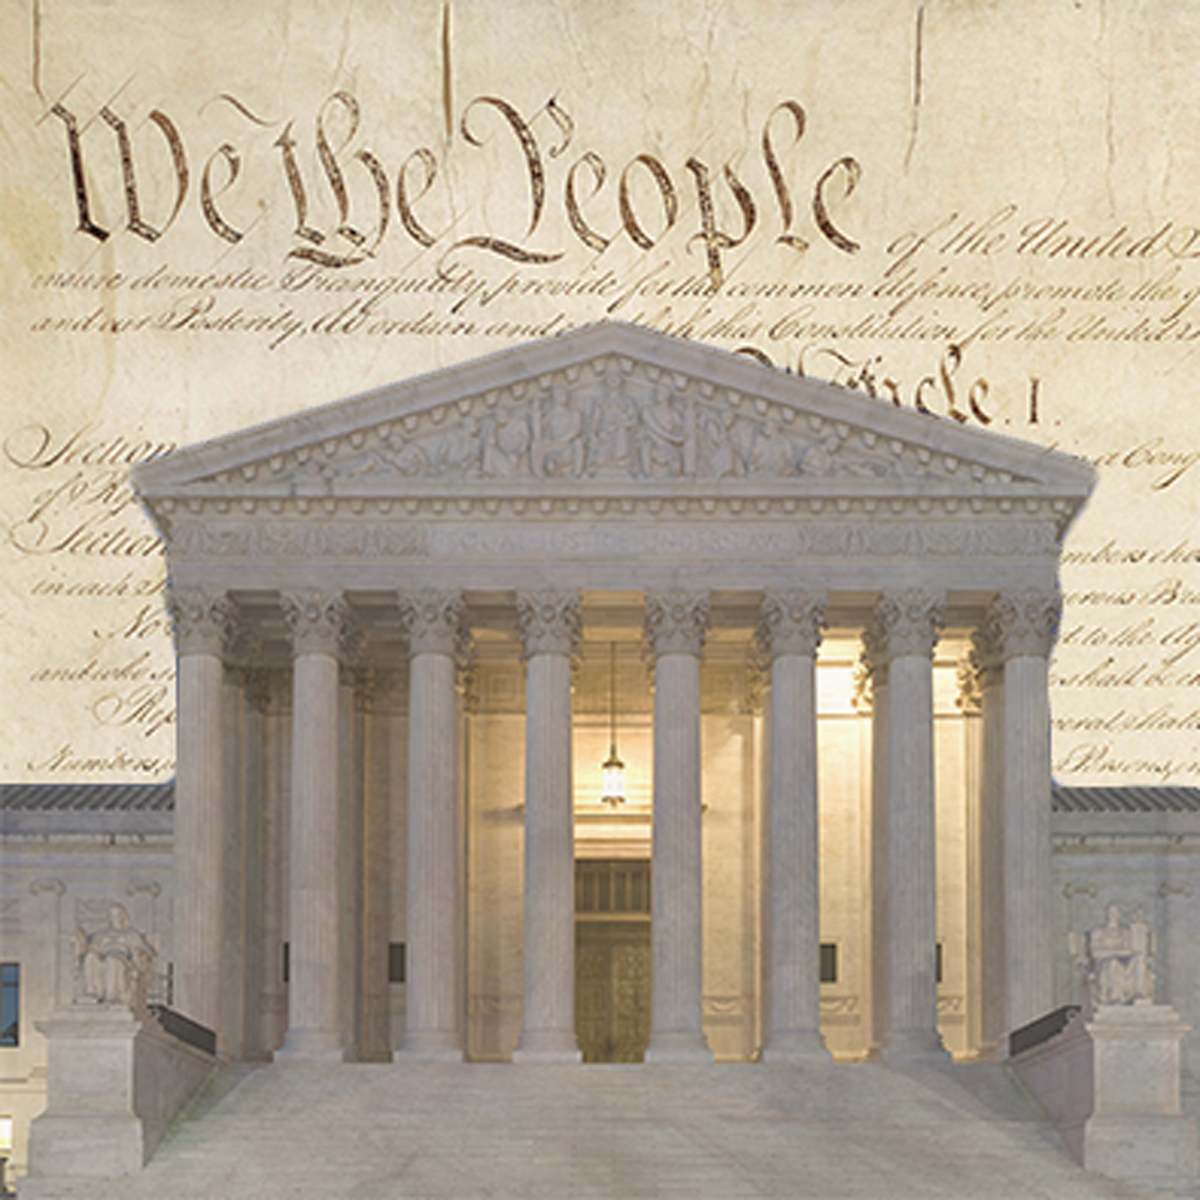 university syllabus for constitutional government and Phd, political science, university of south carolina (2004)  syllabus online  course polsci 411 – constitutional law: government powers & federalism  syllabus  american government, courts and the judicial process, constitutional  law,.